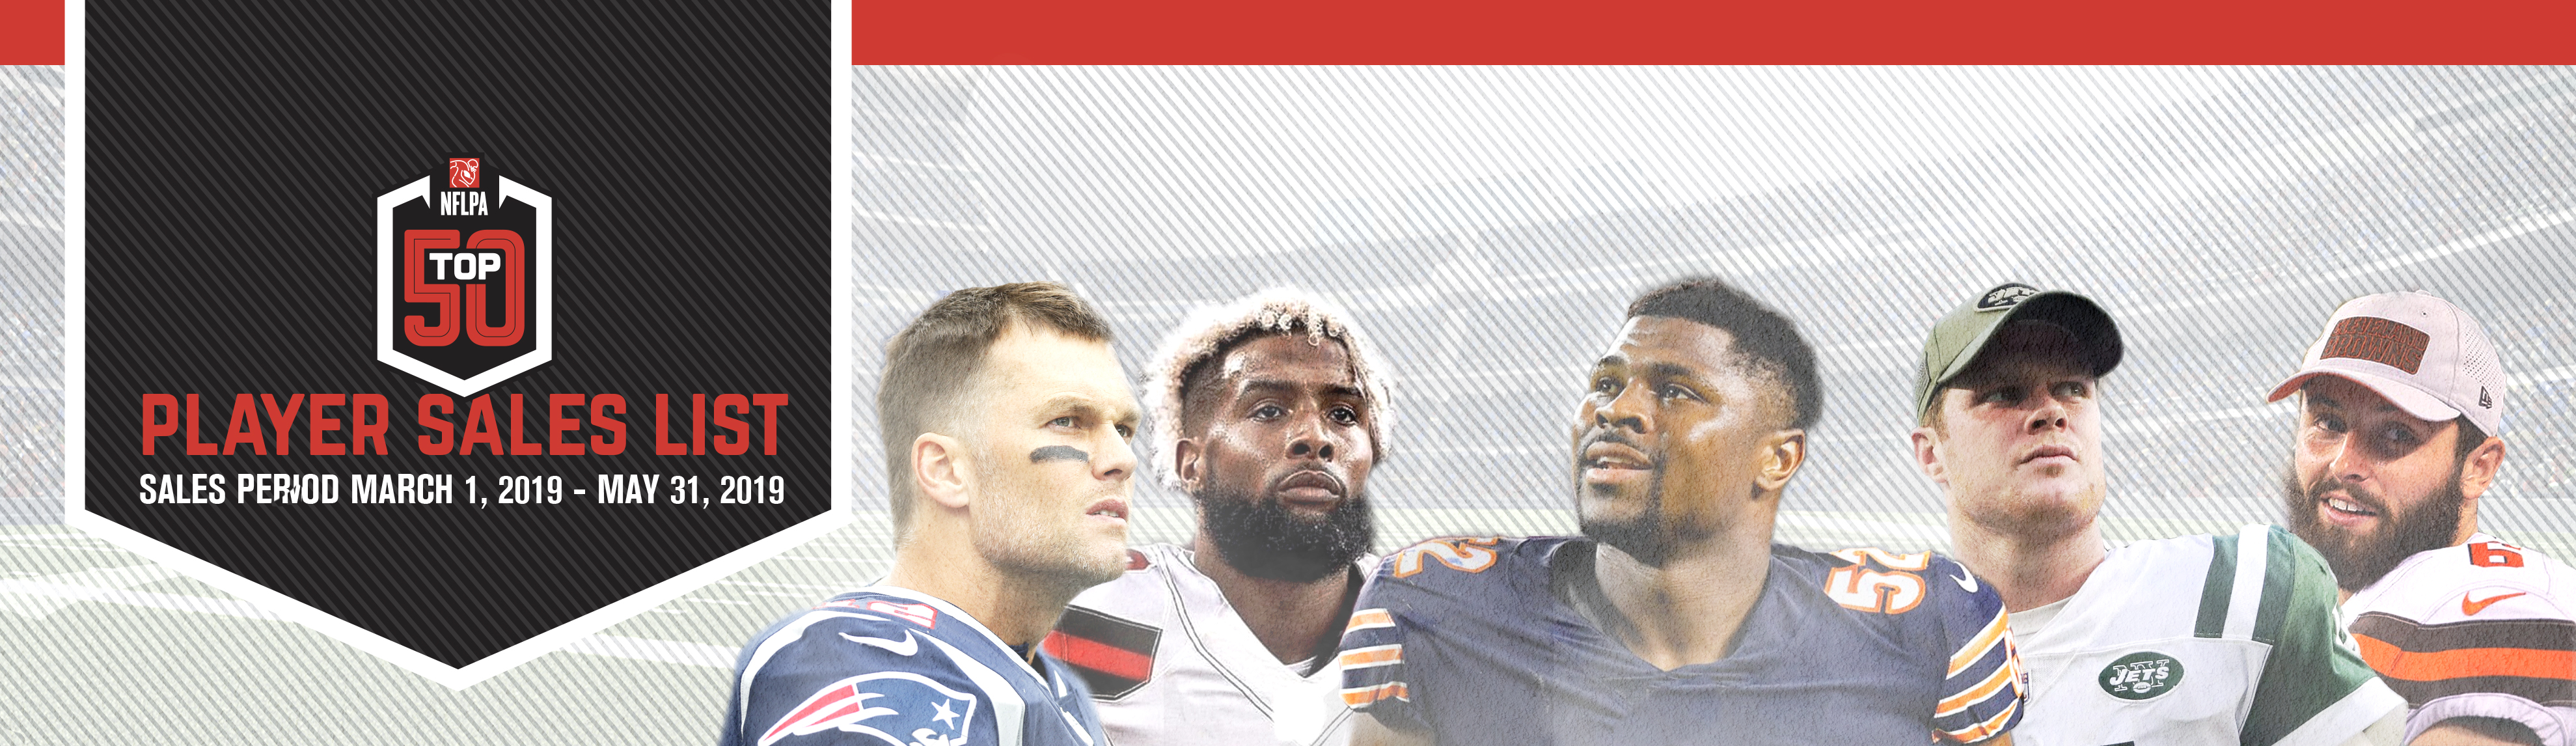 de1c099d NFL Players Inc. - THINGS TO KNOW ABOUT THE PRESEASON NFLPA TOP 50 ...